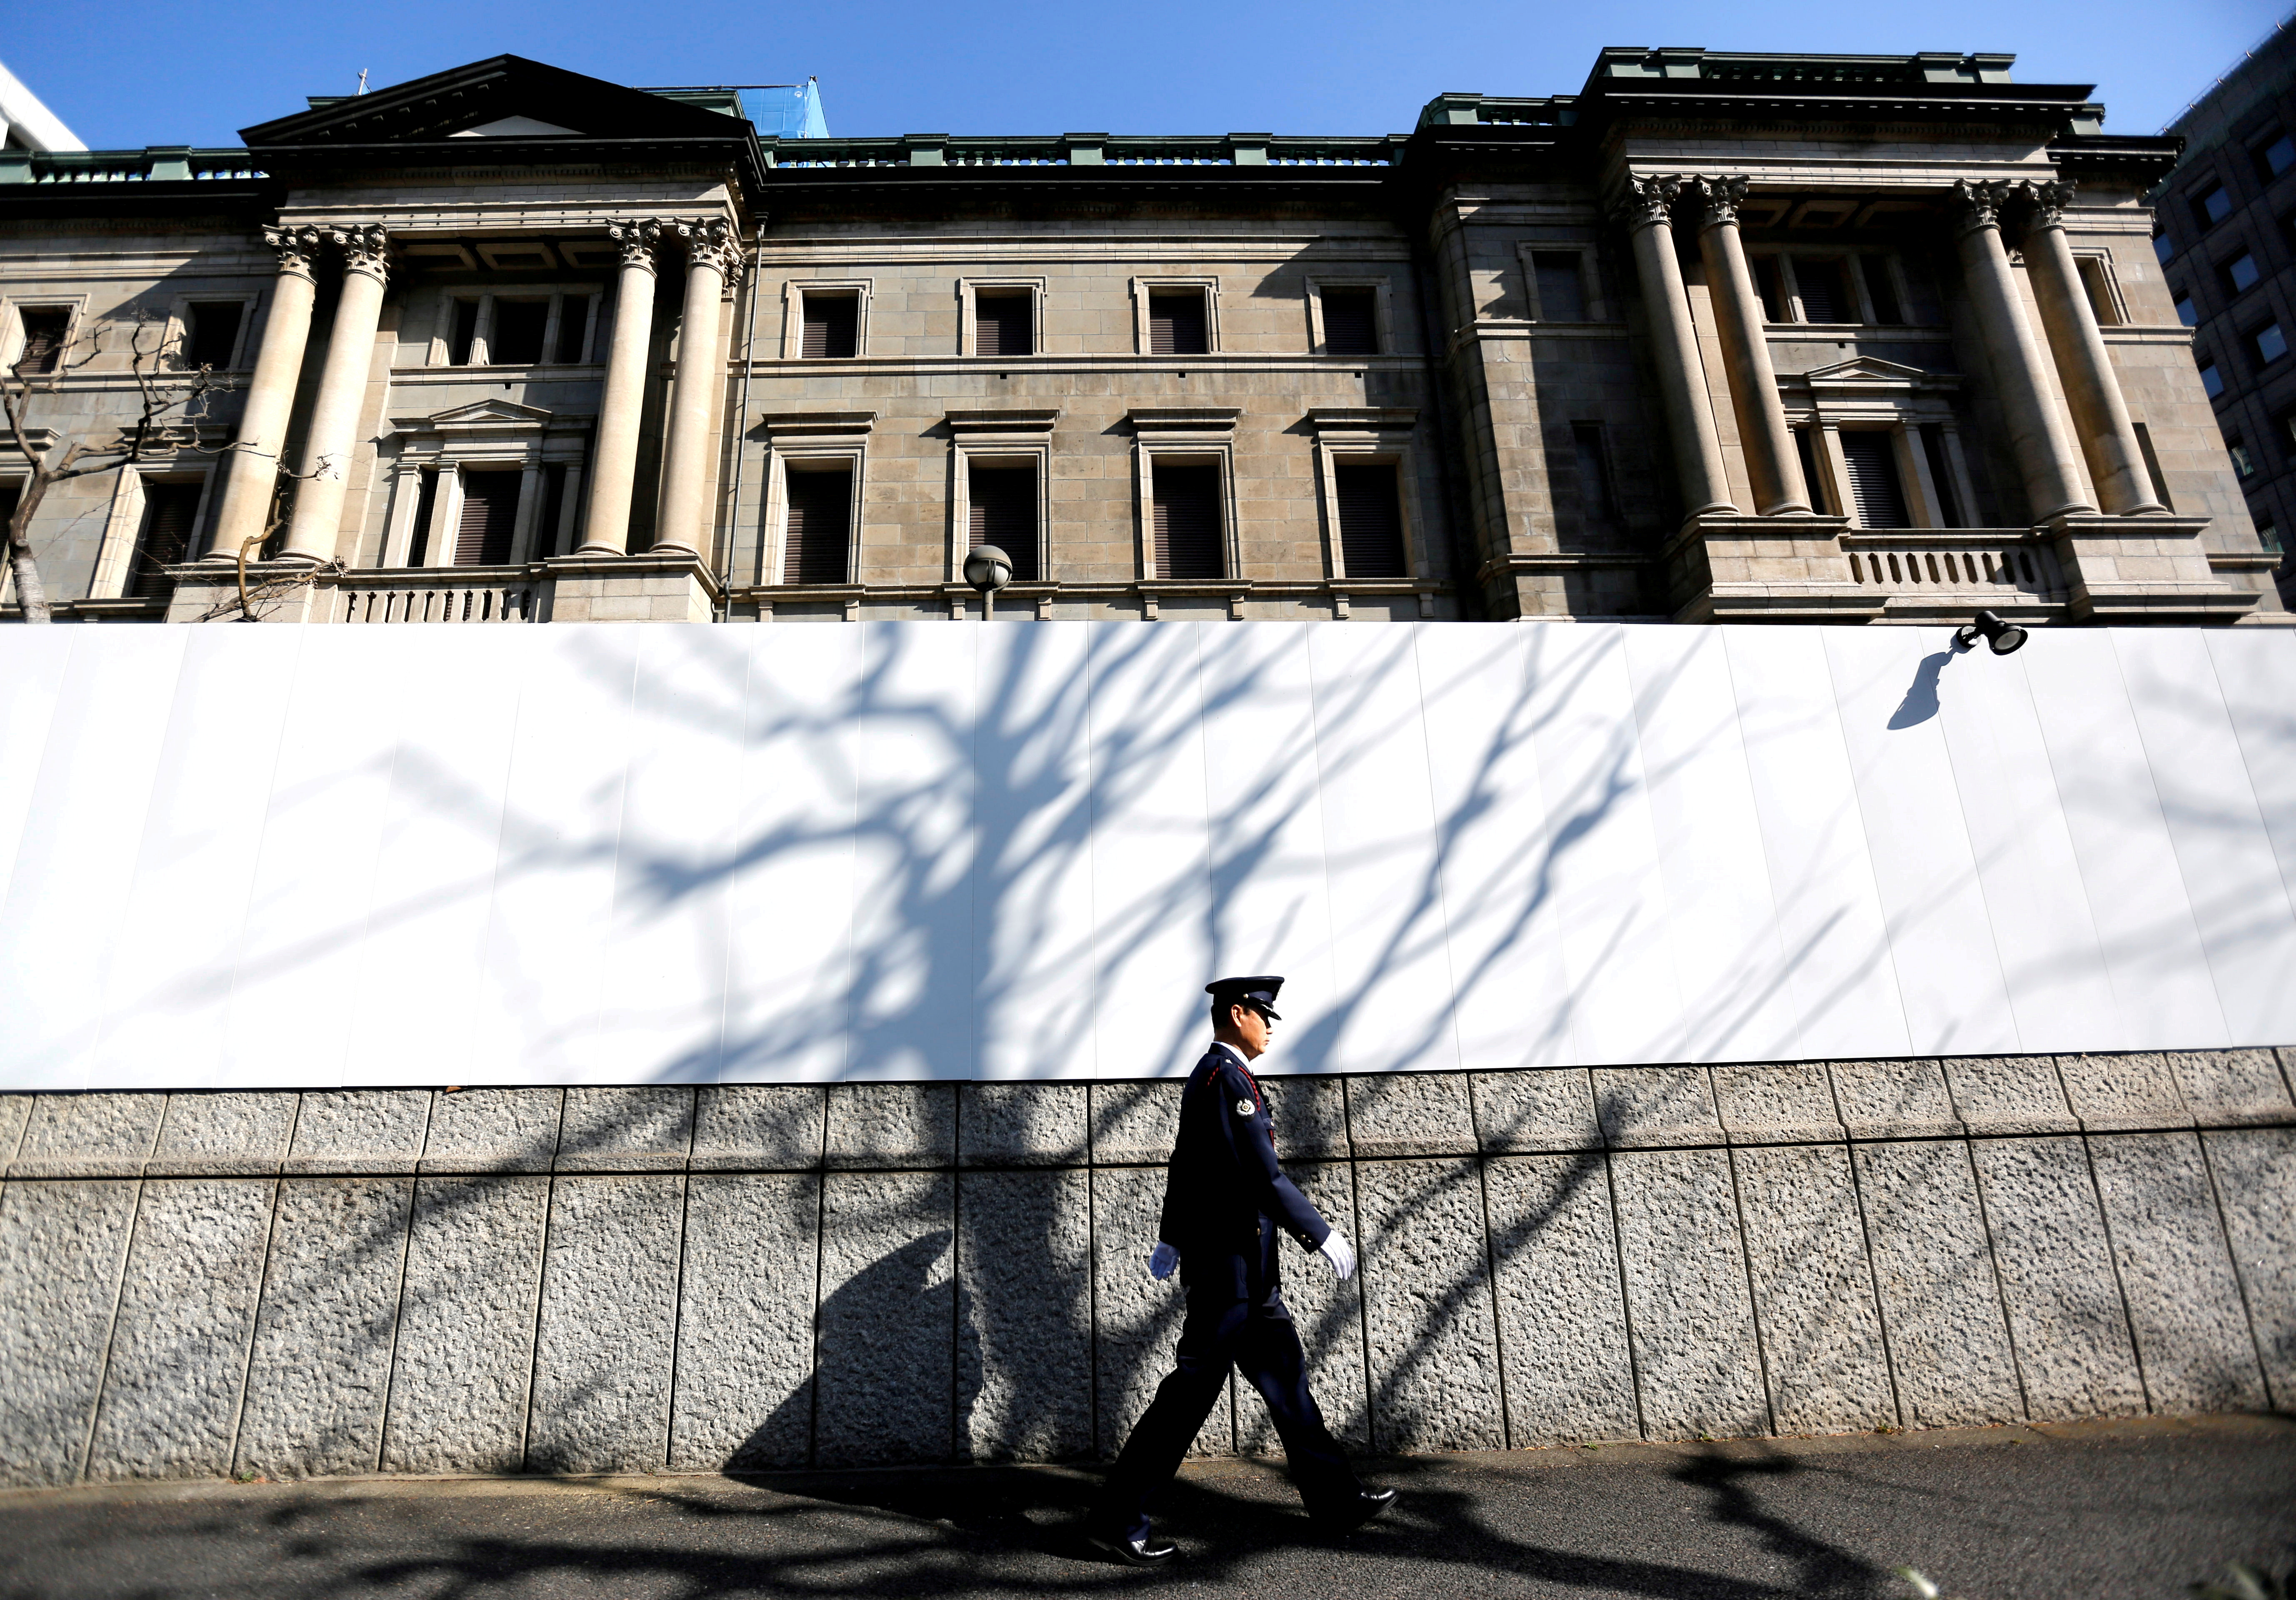 A security guard walks past in front of the Bank of Japan headquarters in Tokyo, Japan January 23, 2019. REUTERS/Issei Kato